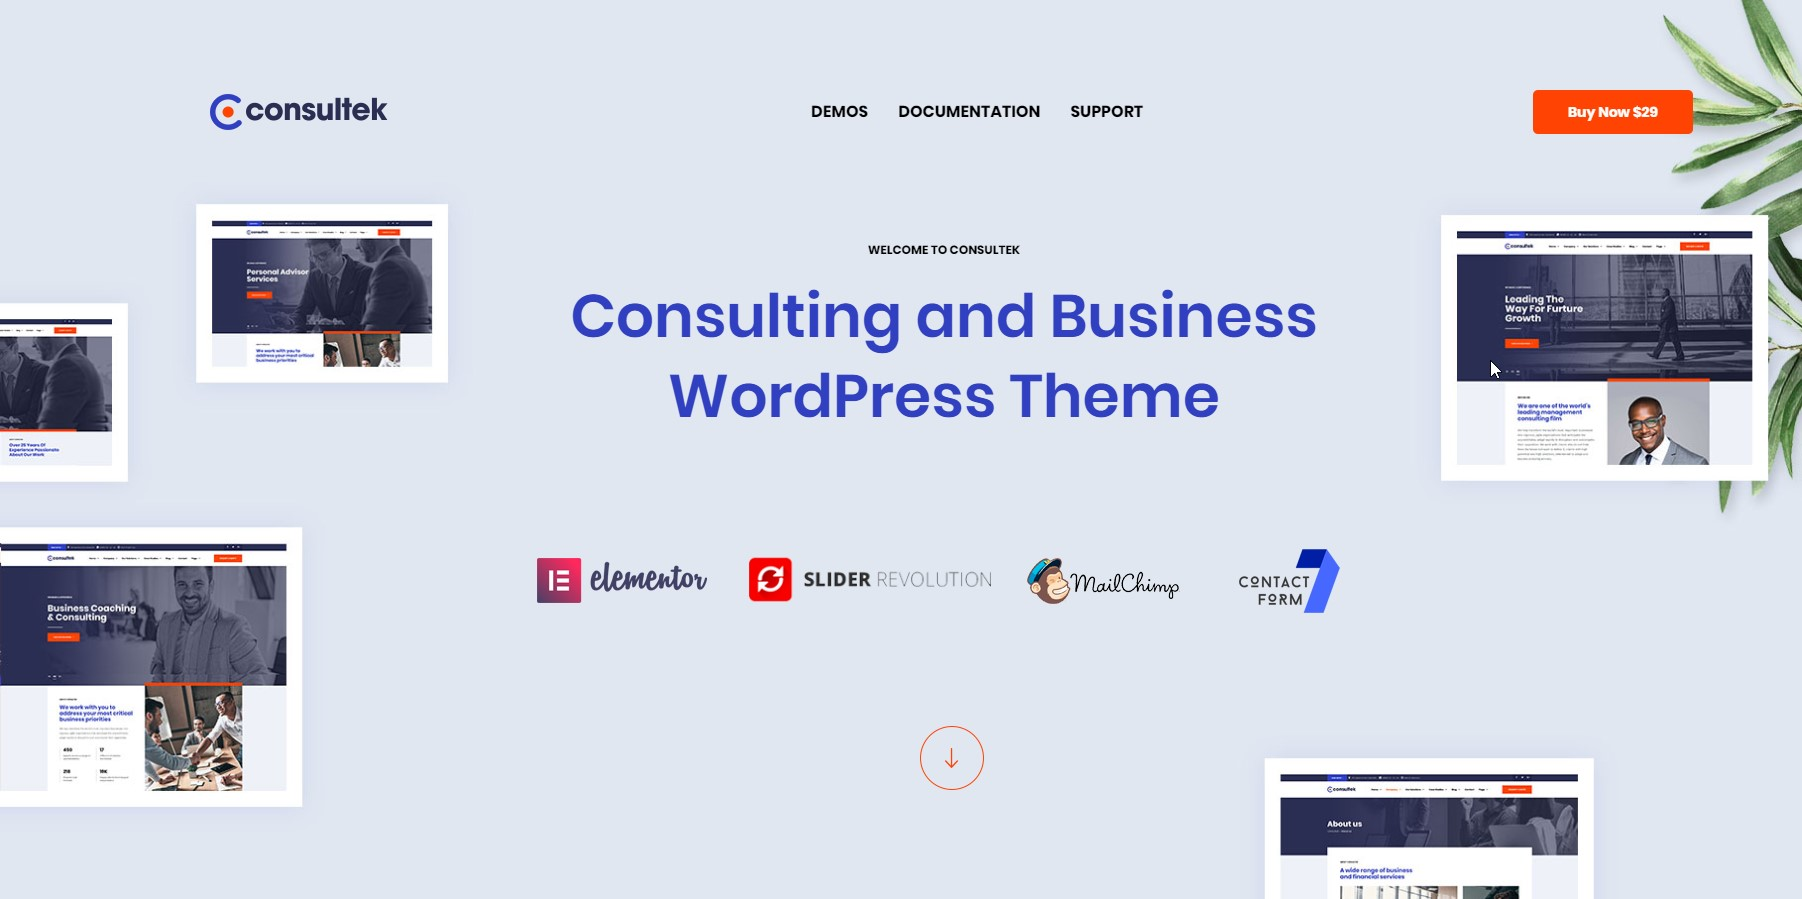 Consultek - Consulting & Business WordPress Theme